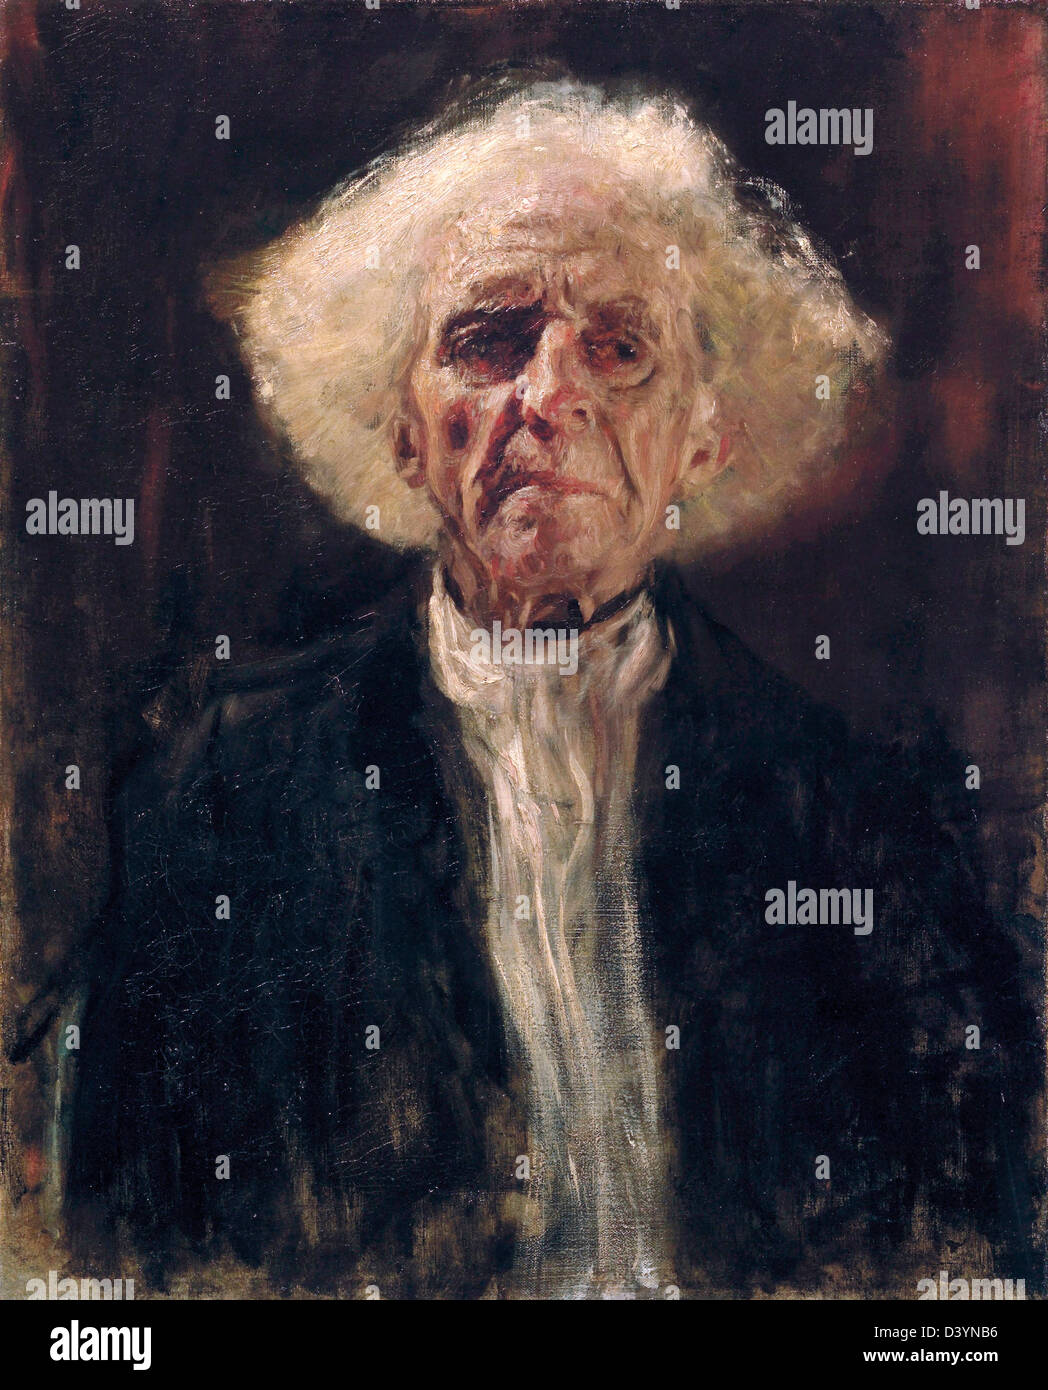 Gustav Klimt, Blind Man 1896 Oil on canvas. Leopold Museum, Vienna, Austria - Stock Image